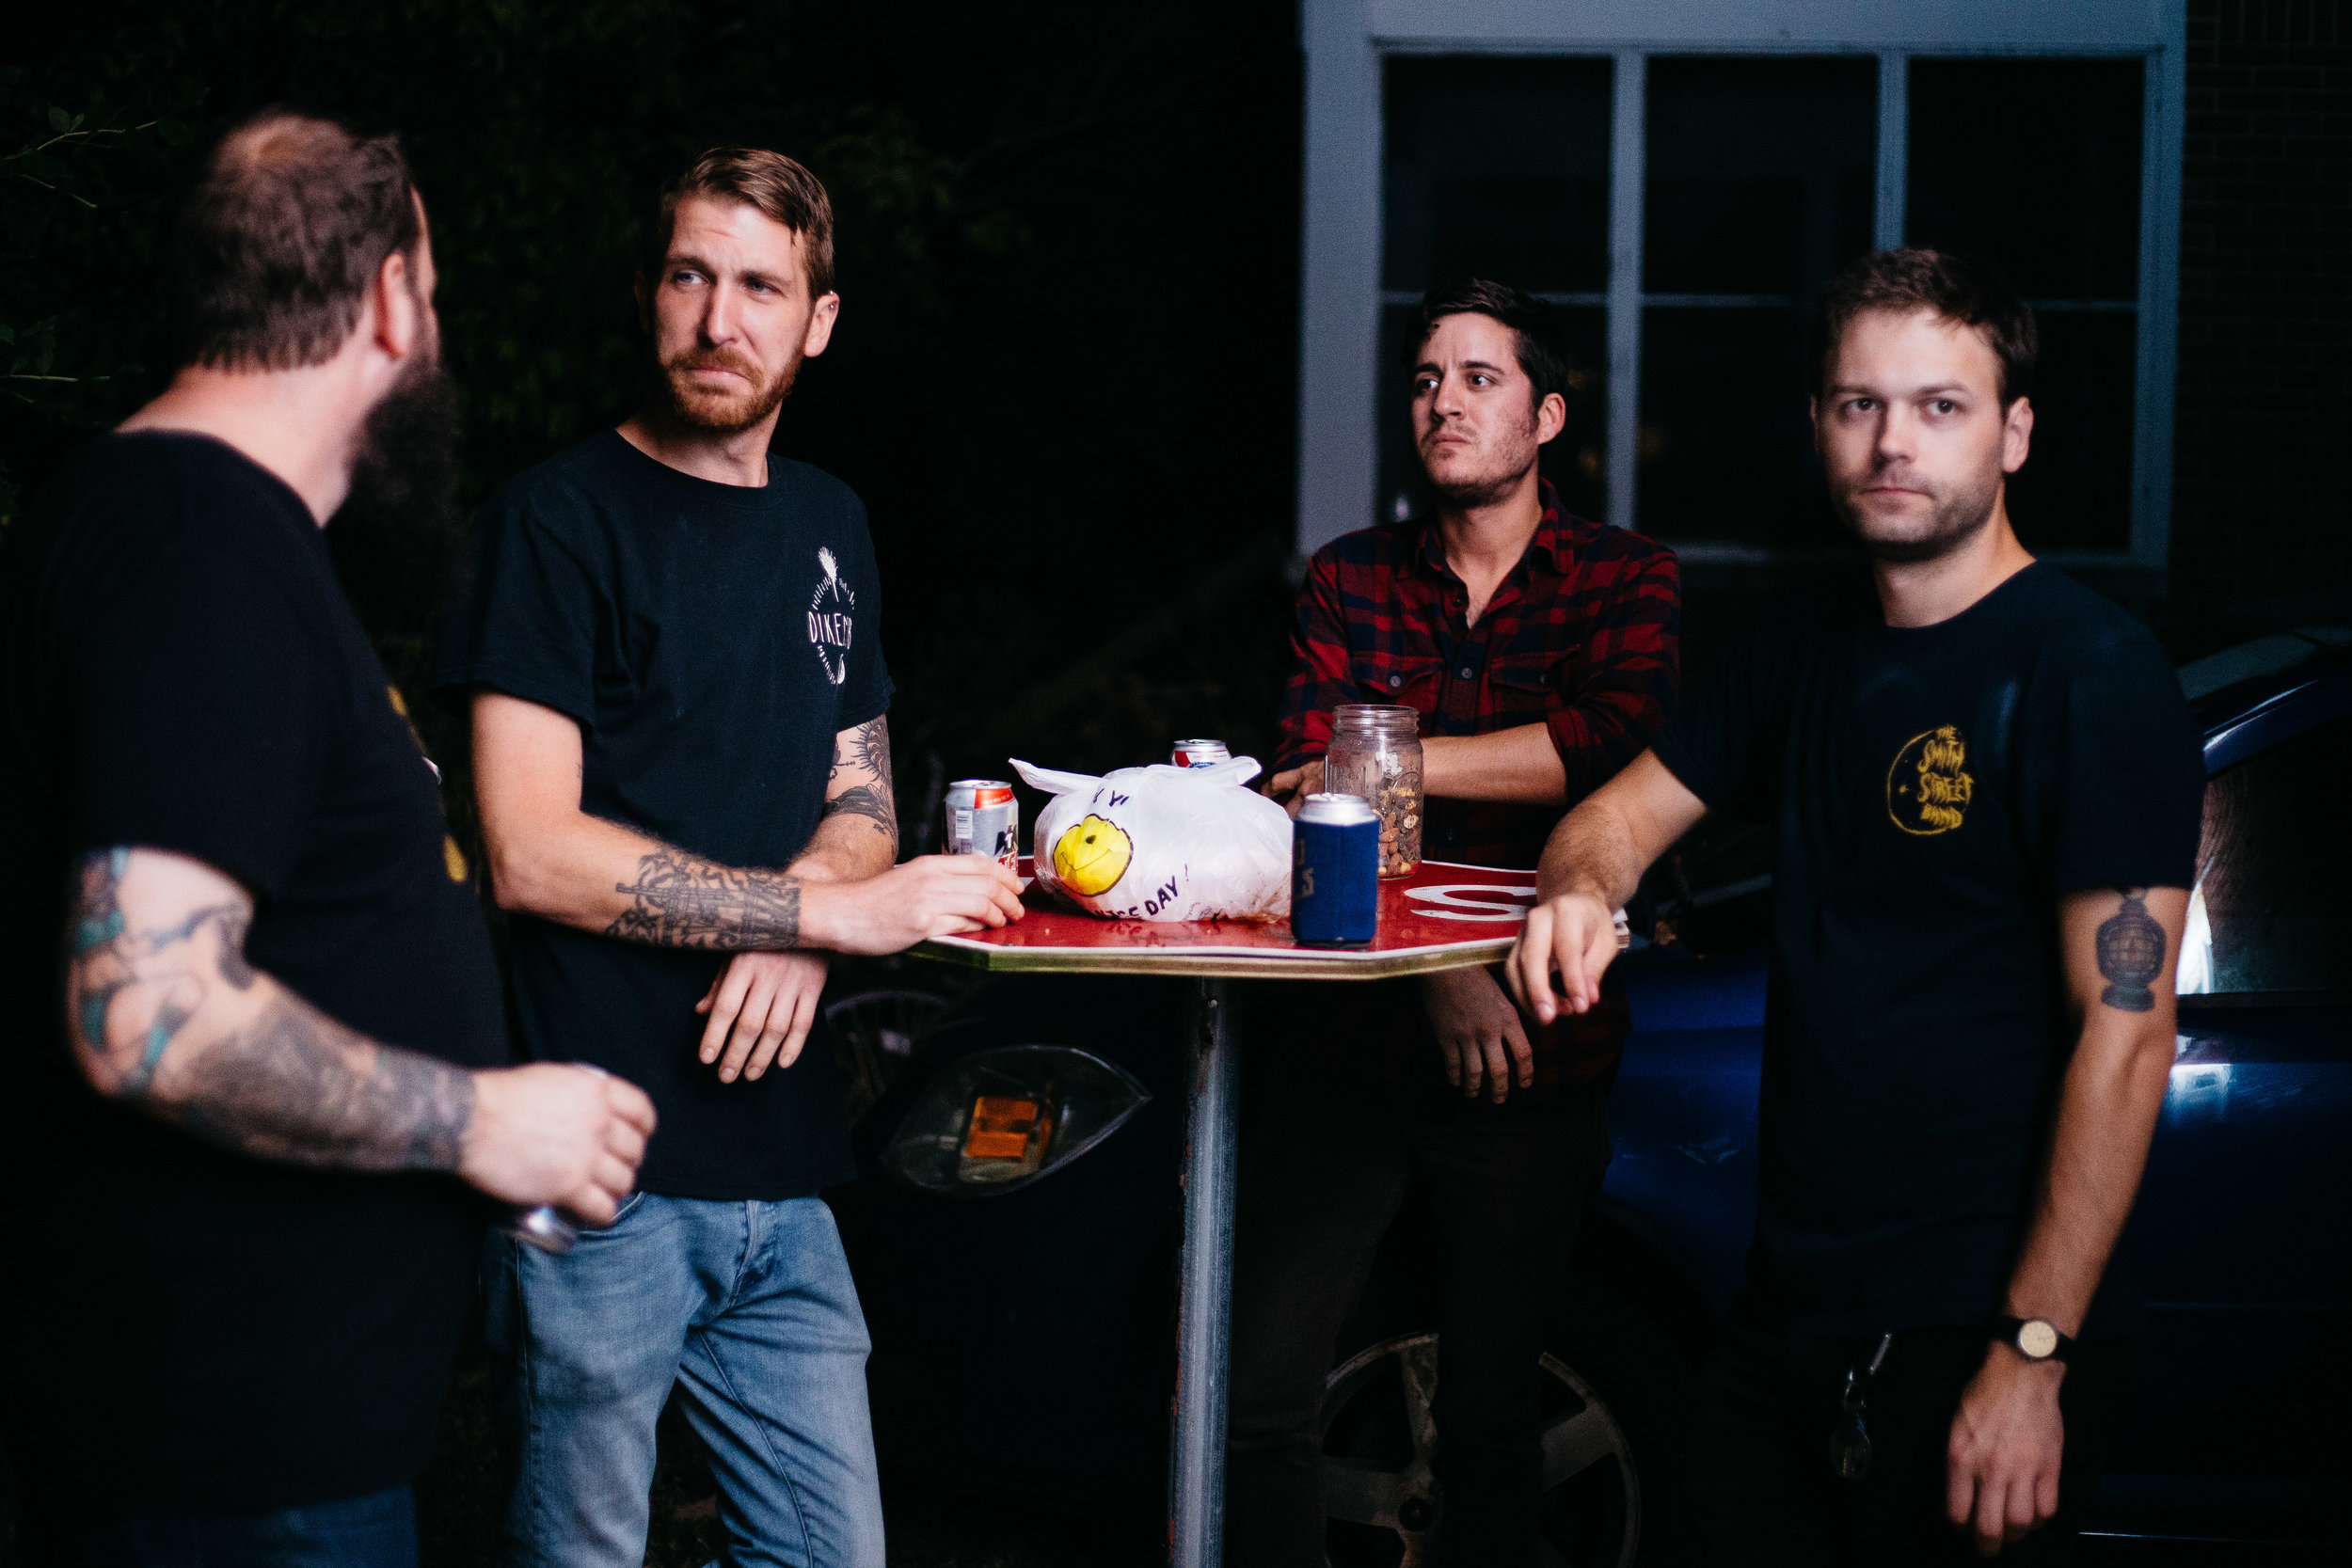 One picture of Signals Midwest and The Gunshy hanging out quickly turned in to an impromptu portrait session.